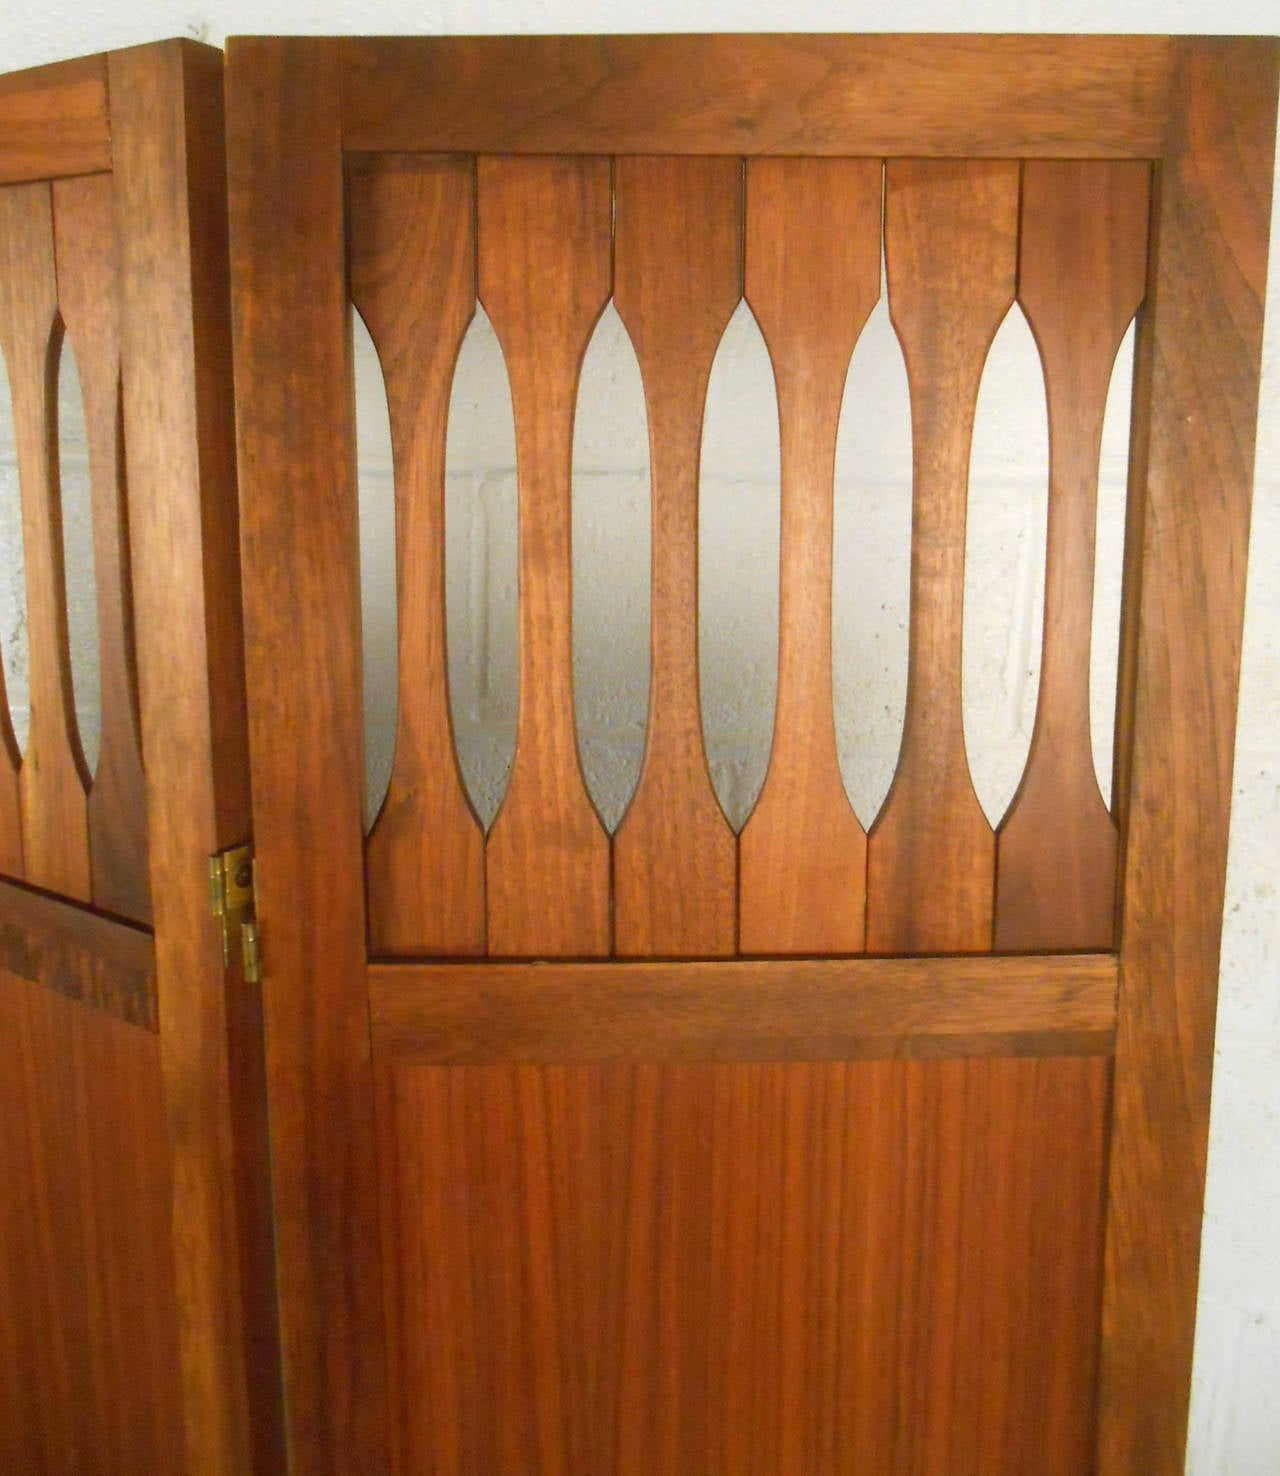 Mid-20th Century Mid-Century Modern Walnut Room Divider with Brass Trim For Sale